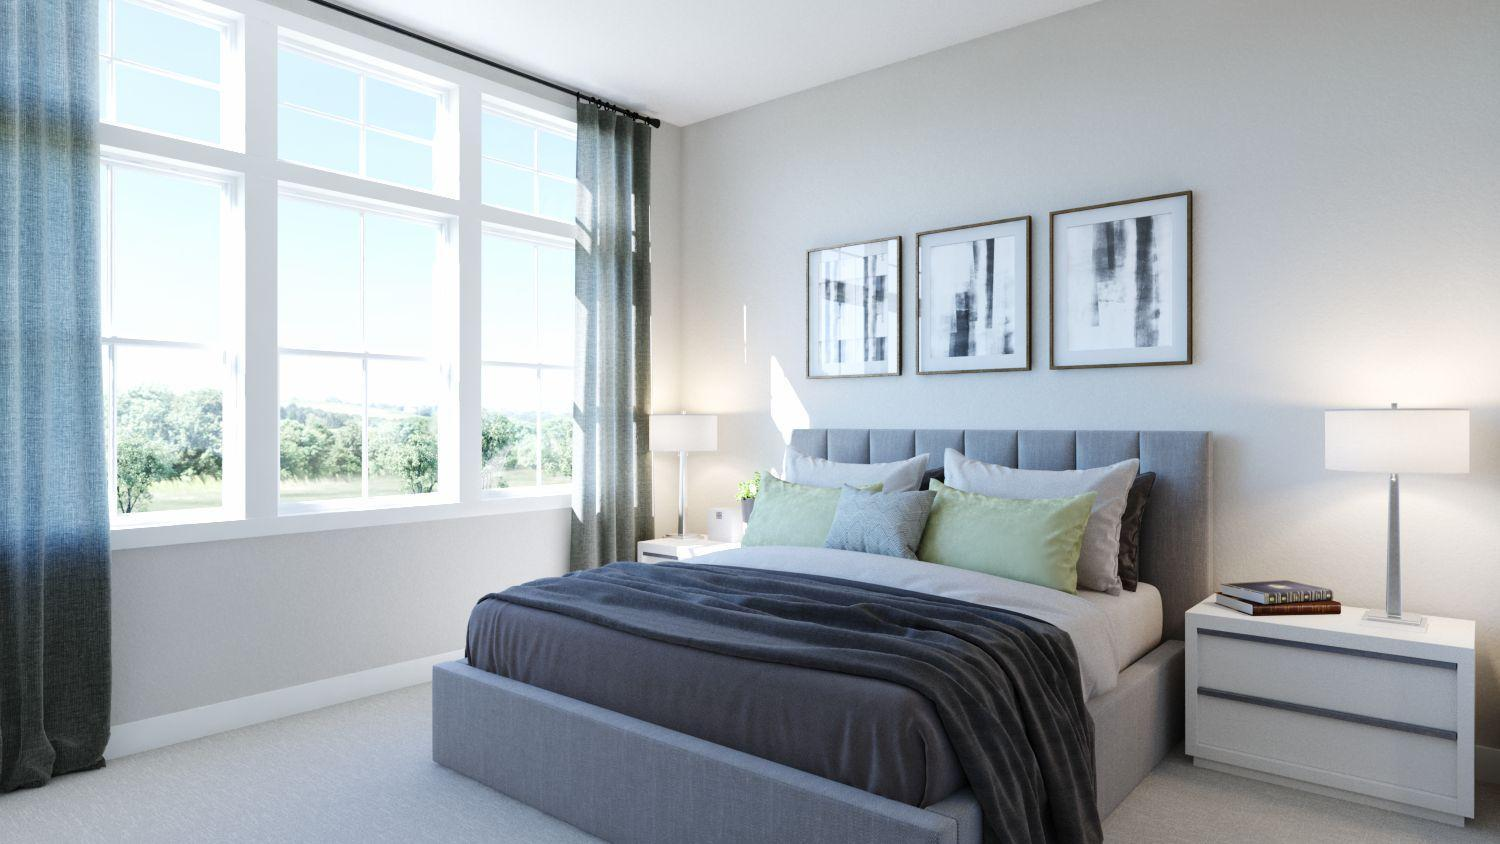 Bedroom featured in the Newport Residence 1 By Trumark Homes in Oakland-Alameda, CA